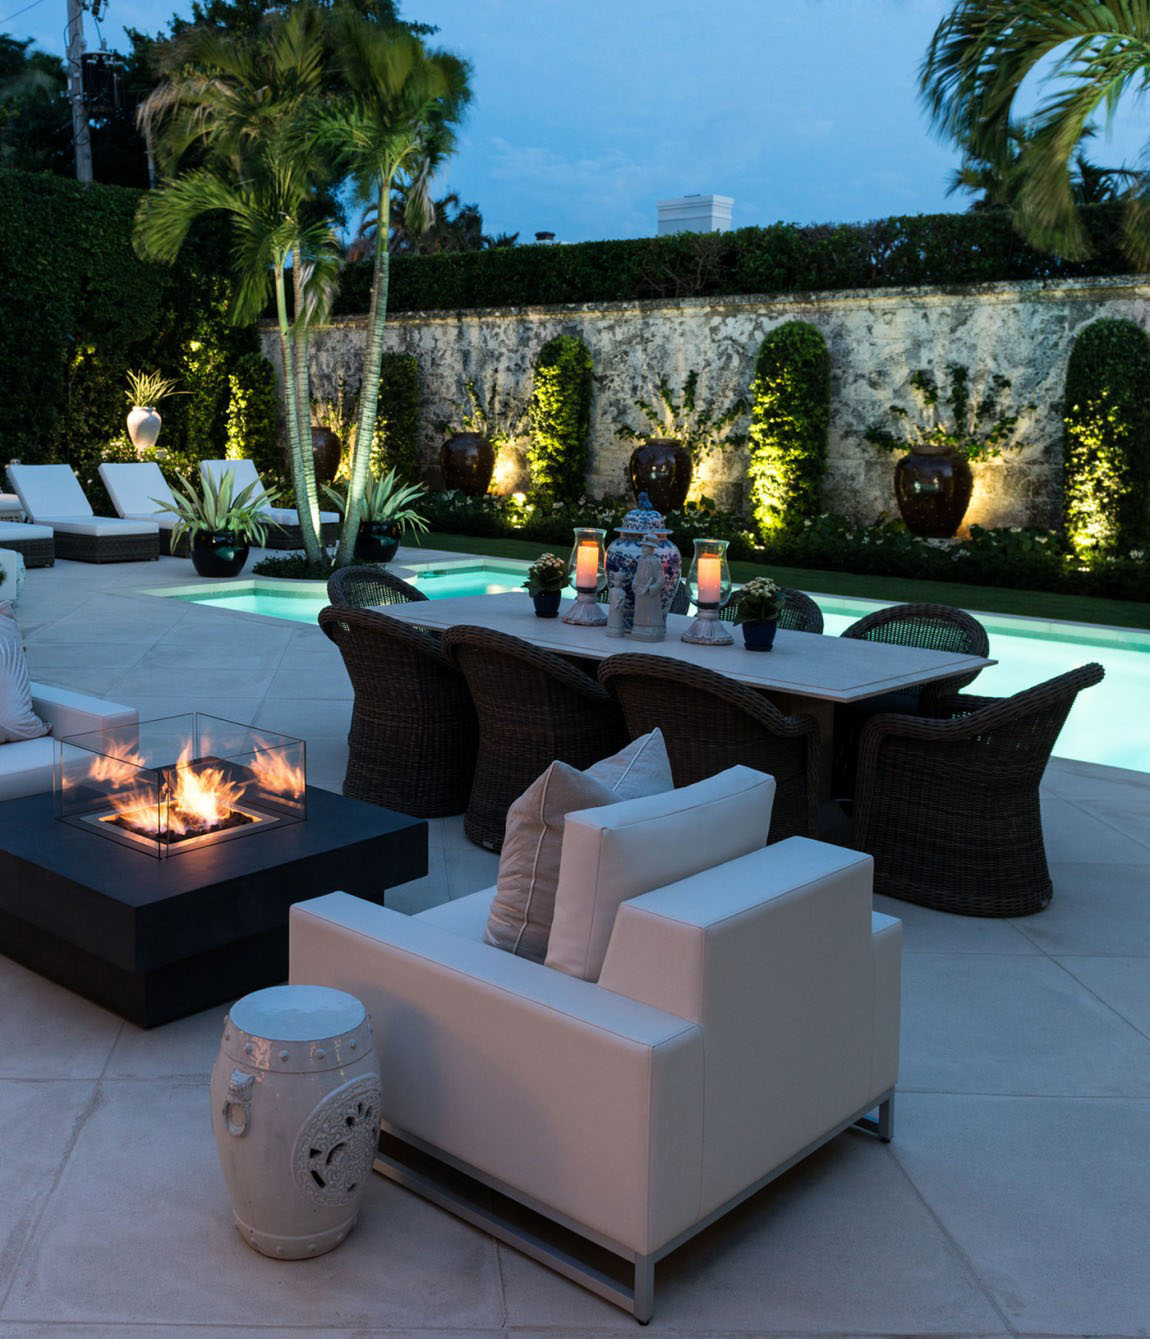 Elegant Outdoor Patio Florida Villa Living